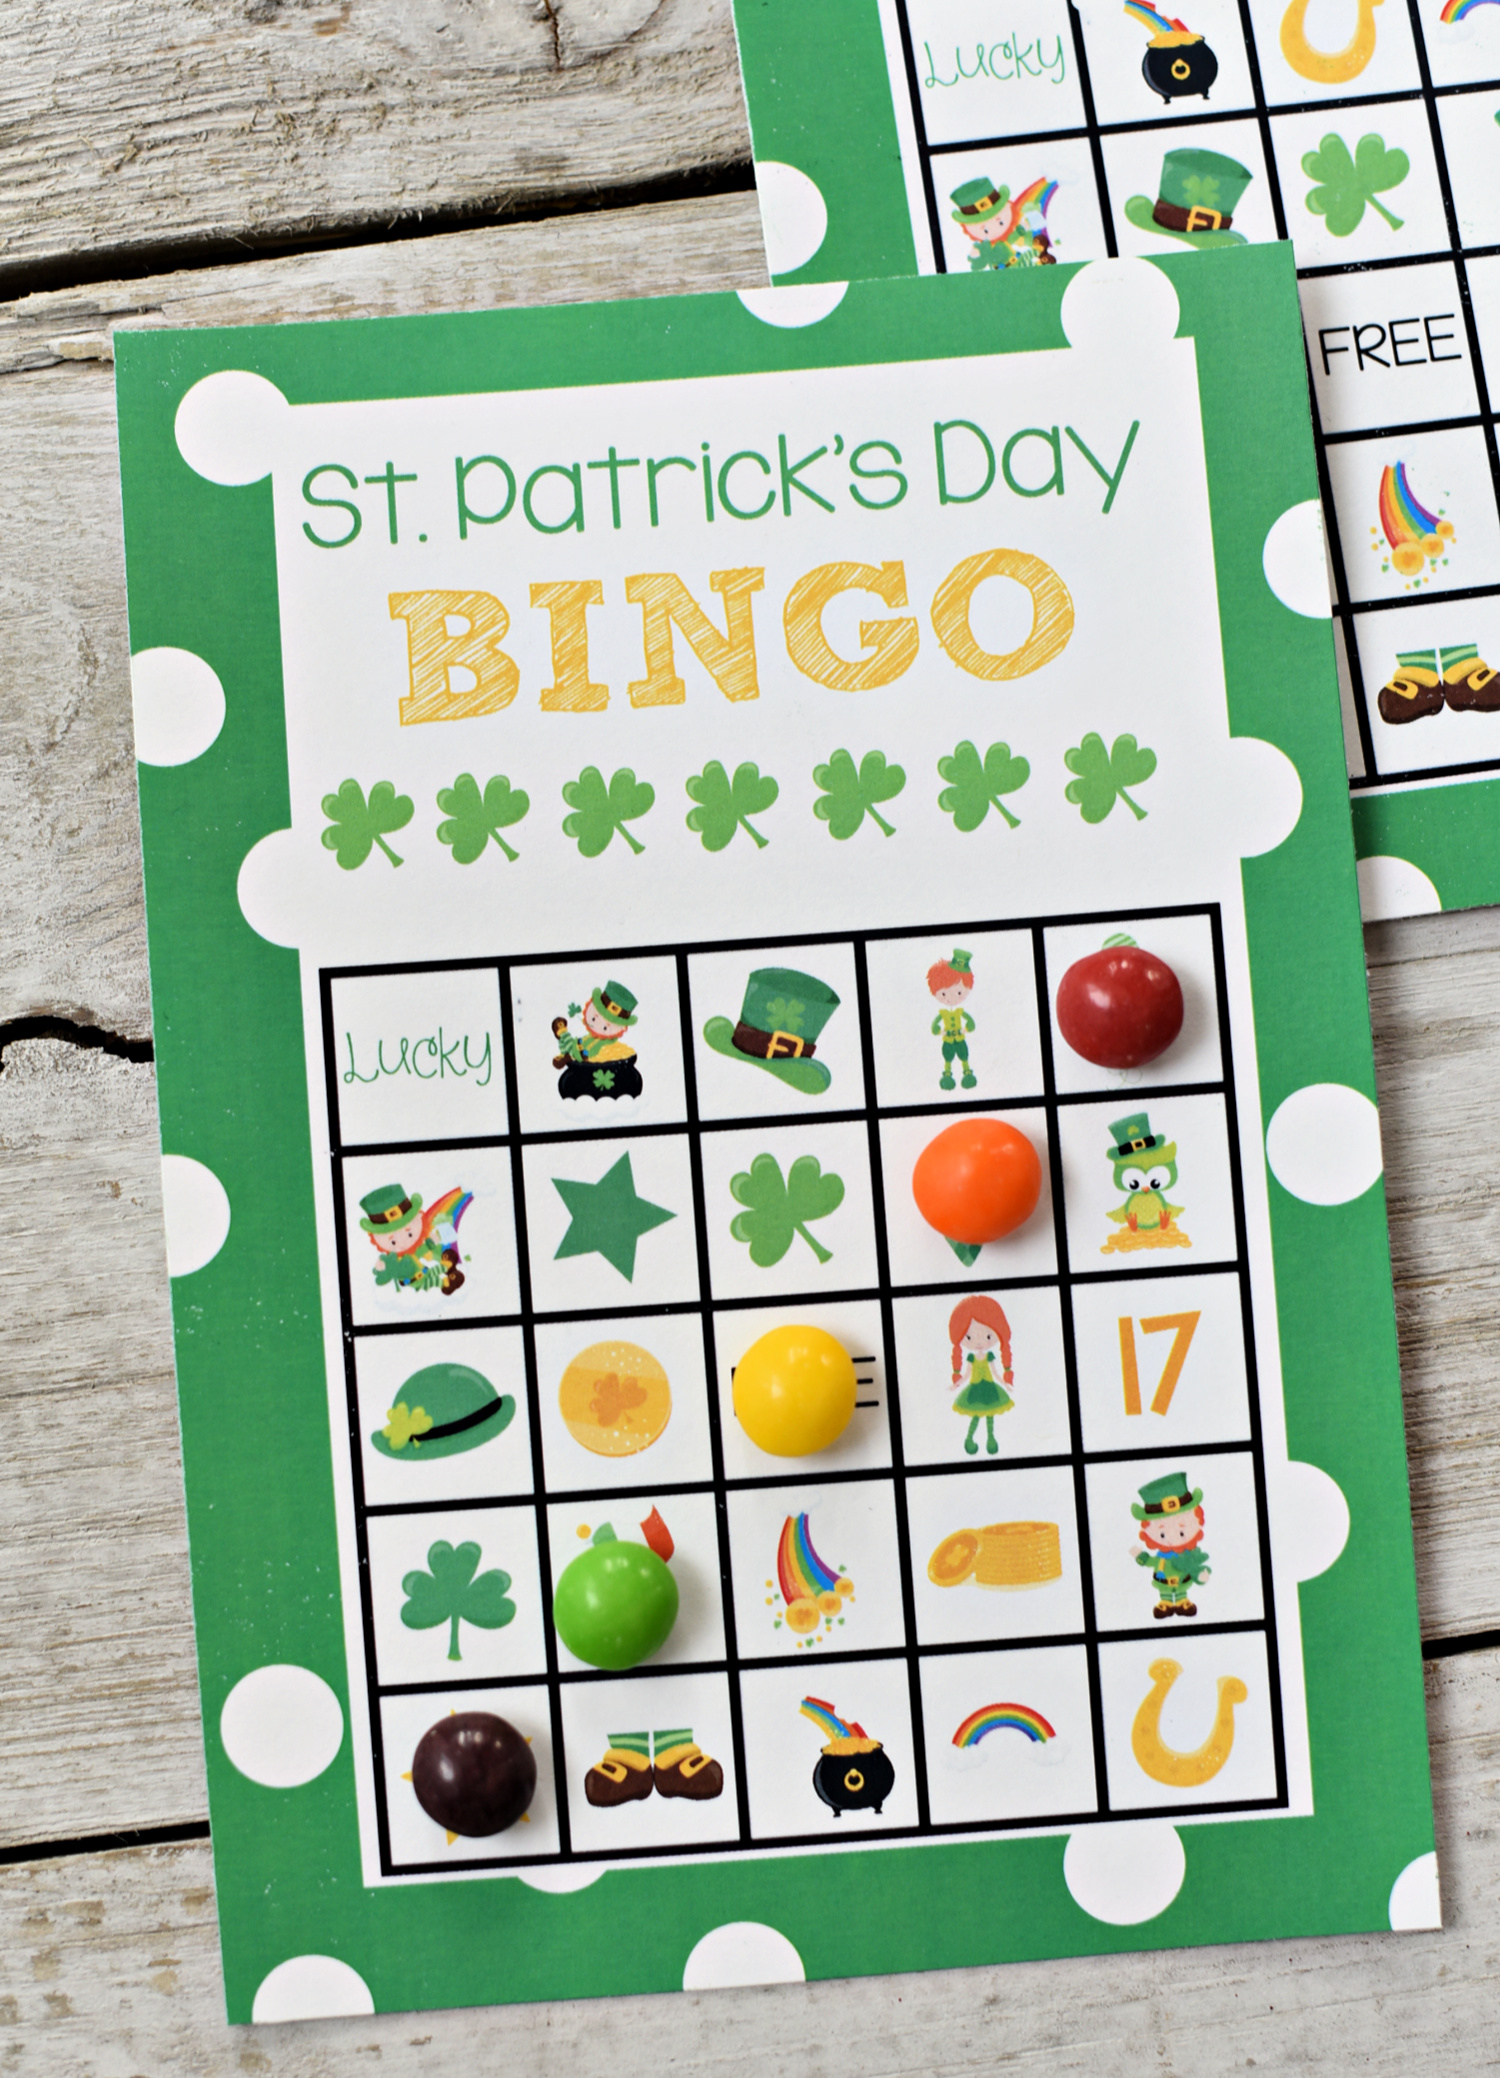 St. Patrick's Day Bingo Game to Print and Play with the kids